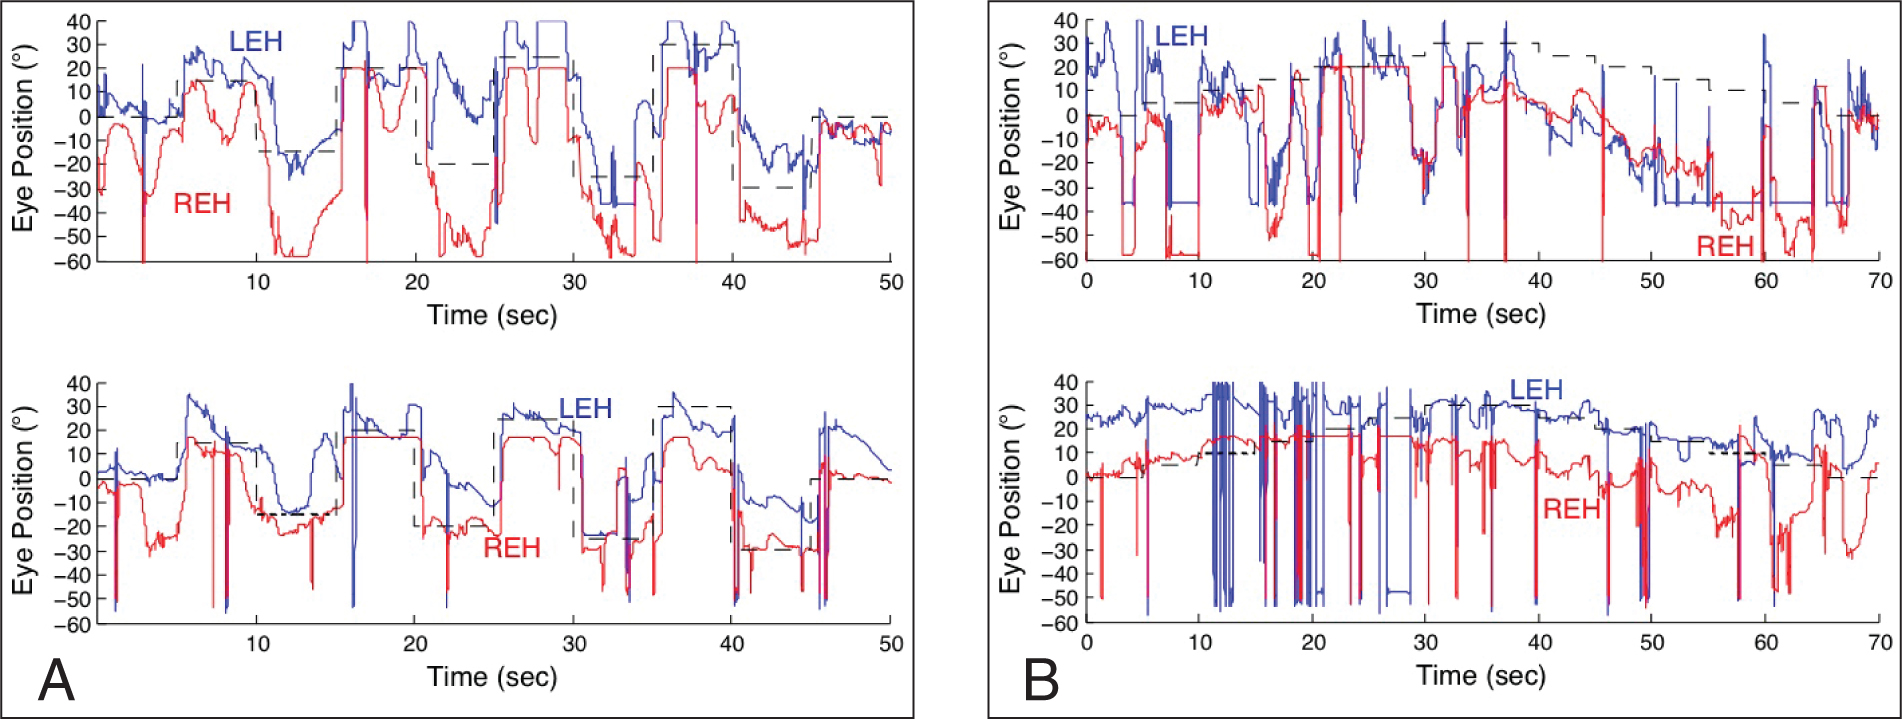 Horizontal eye-movement data during binocular viewing of the right (REH) and left (LEH) eyes in response to target positions (shown dashed). (A) Targets of increasing lateral gaze angles, alternating in direction. (B) Targets stepping to the right and back to center. In both A and B, the top traces are preoperative tenotomy and reattachment and the bottom traces are postoperative tenotomy and reattachment. Dashed lines are target positions and large transient deflections or saturations denote transient data dropout (due to blinking) or saturation.